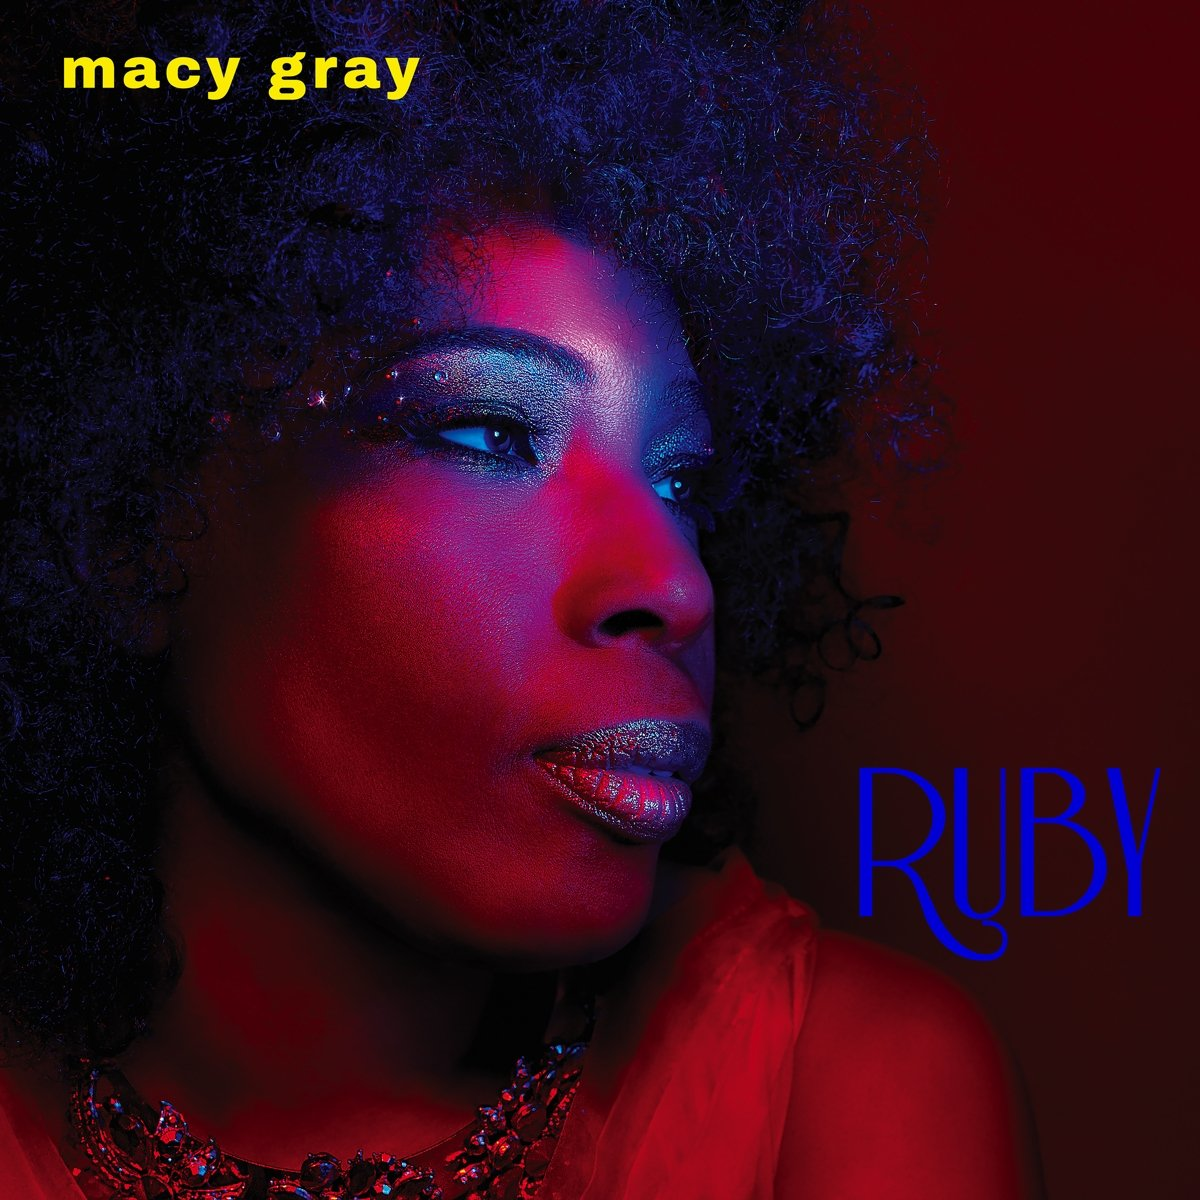 Macy Gray - Ruby (2018) [FLAC] Download